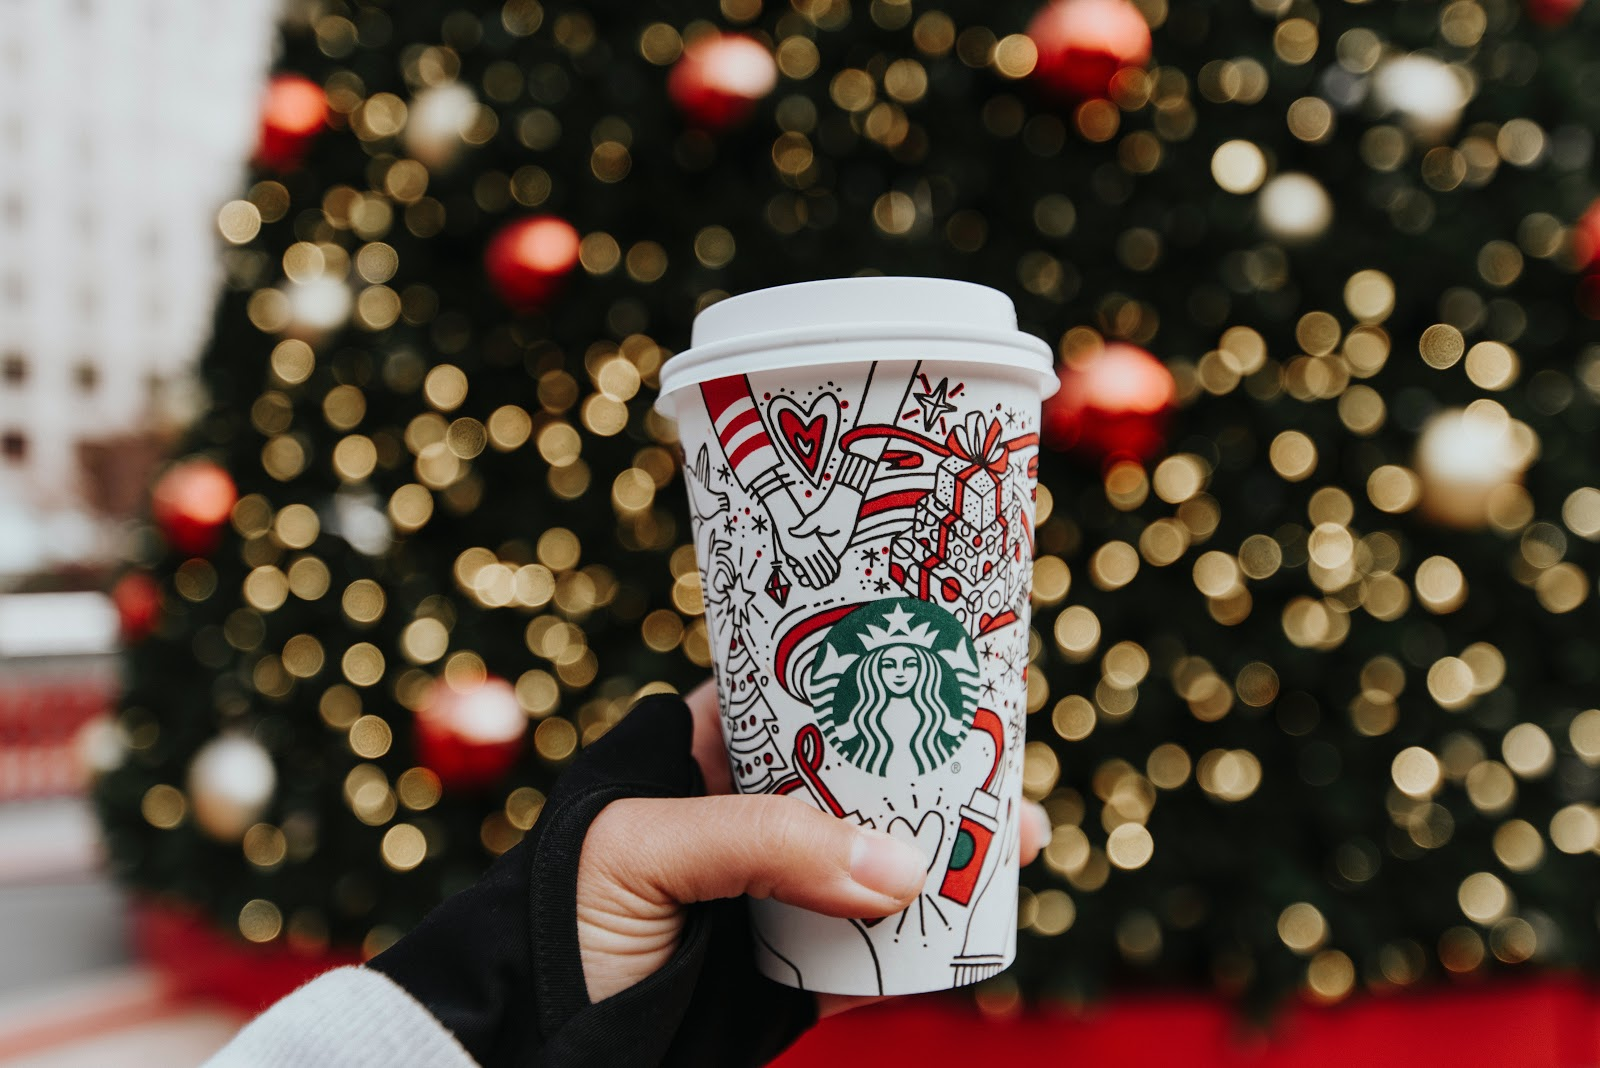 A hand holding a decorated coffee cup in front of a Christmas tree.